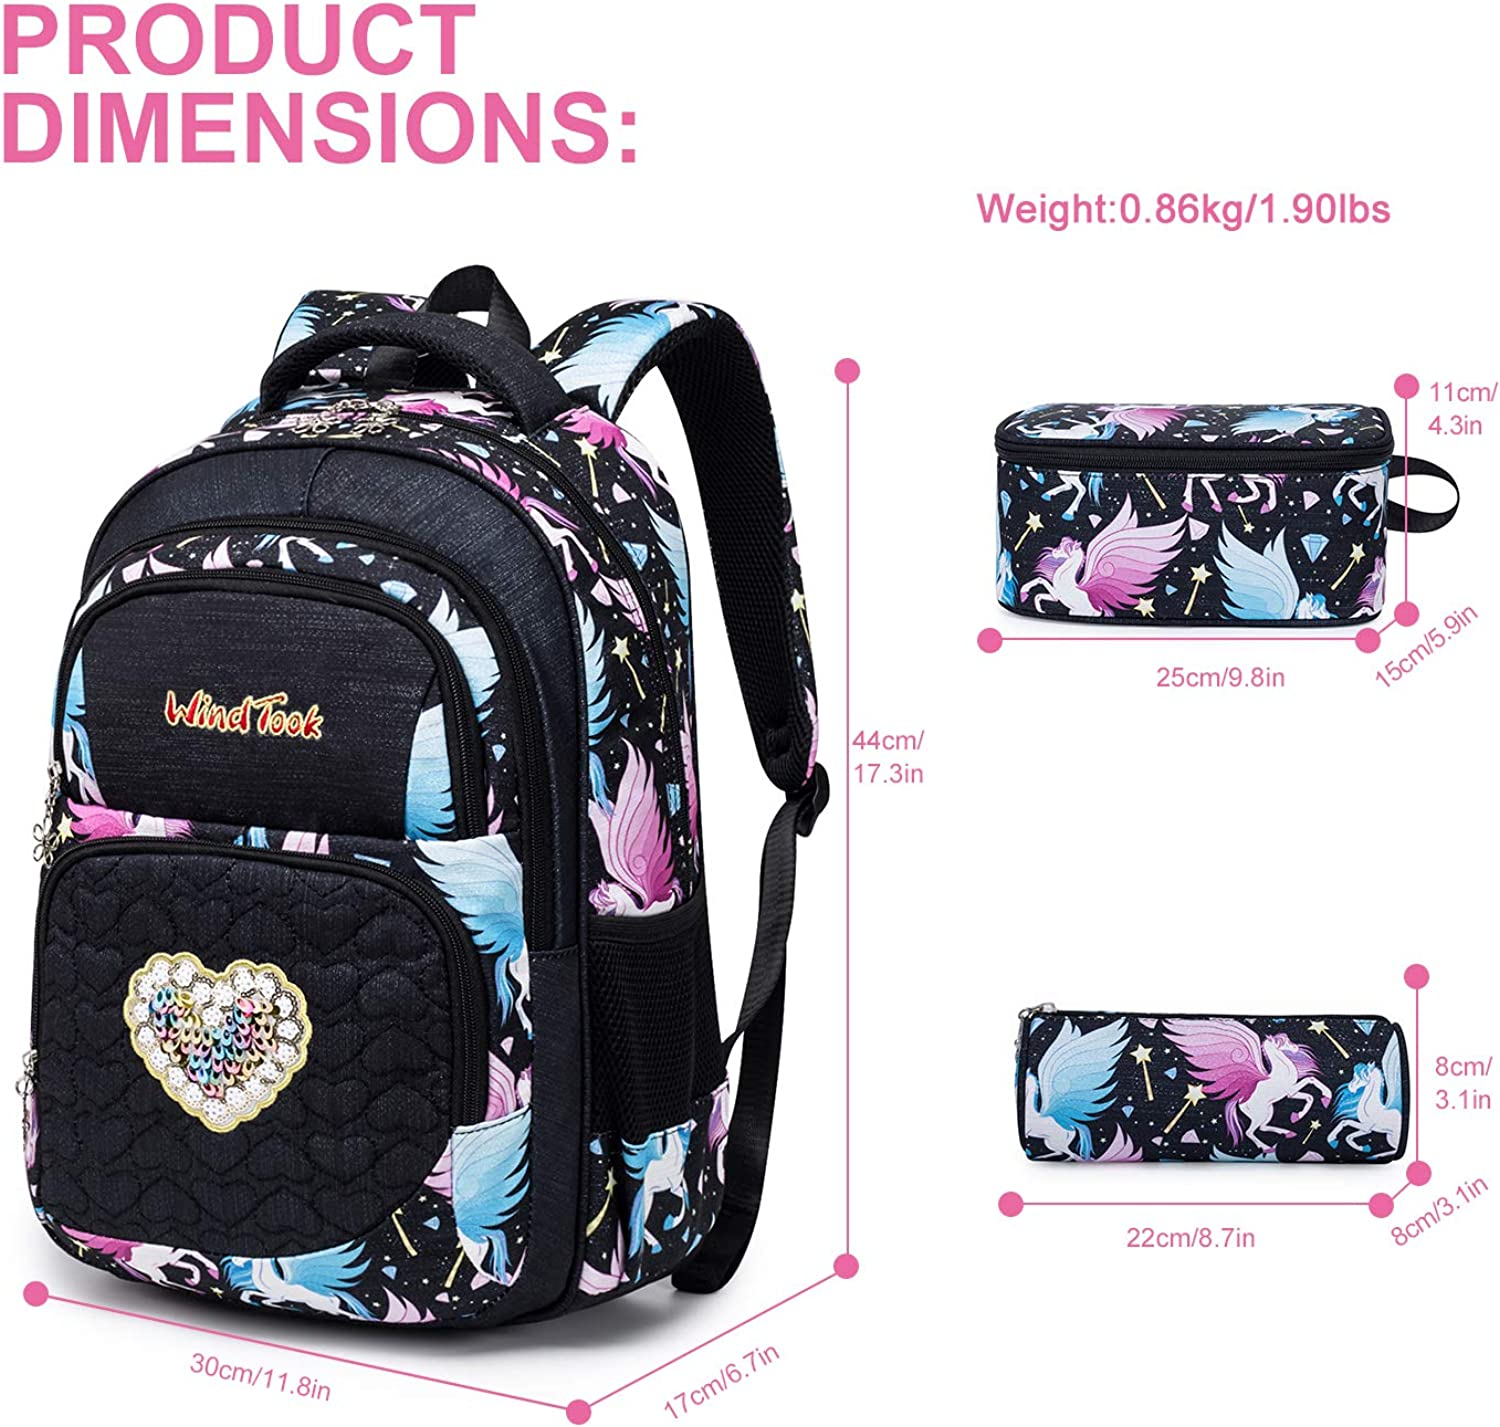 Limiejo Kid School Bag Fashion Supplies Creative Home Hanger Durable Water Resistant Classic Backpacks Daypack Bag Pack Casual Bags to School Kid Sports Bag